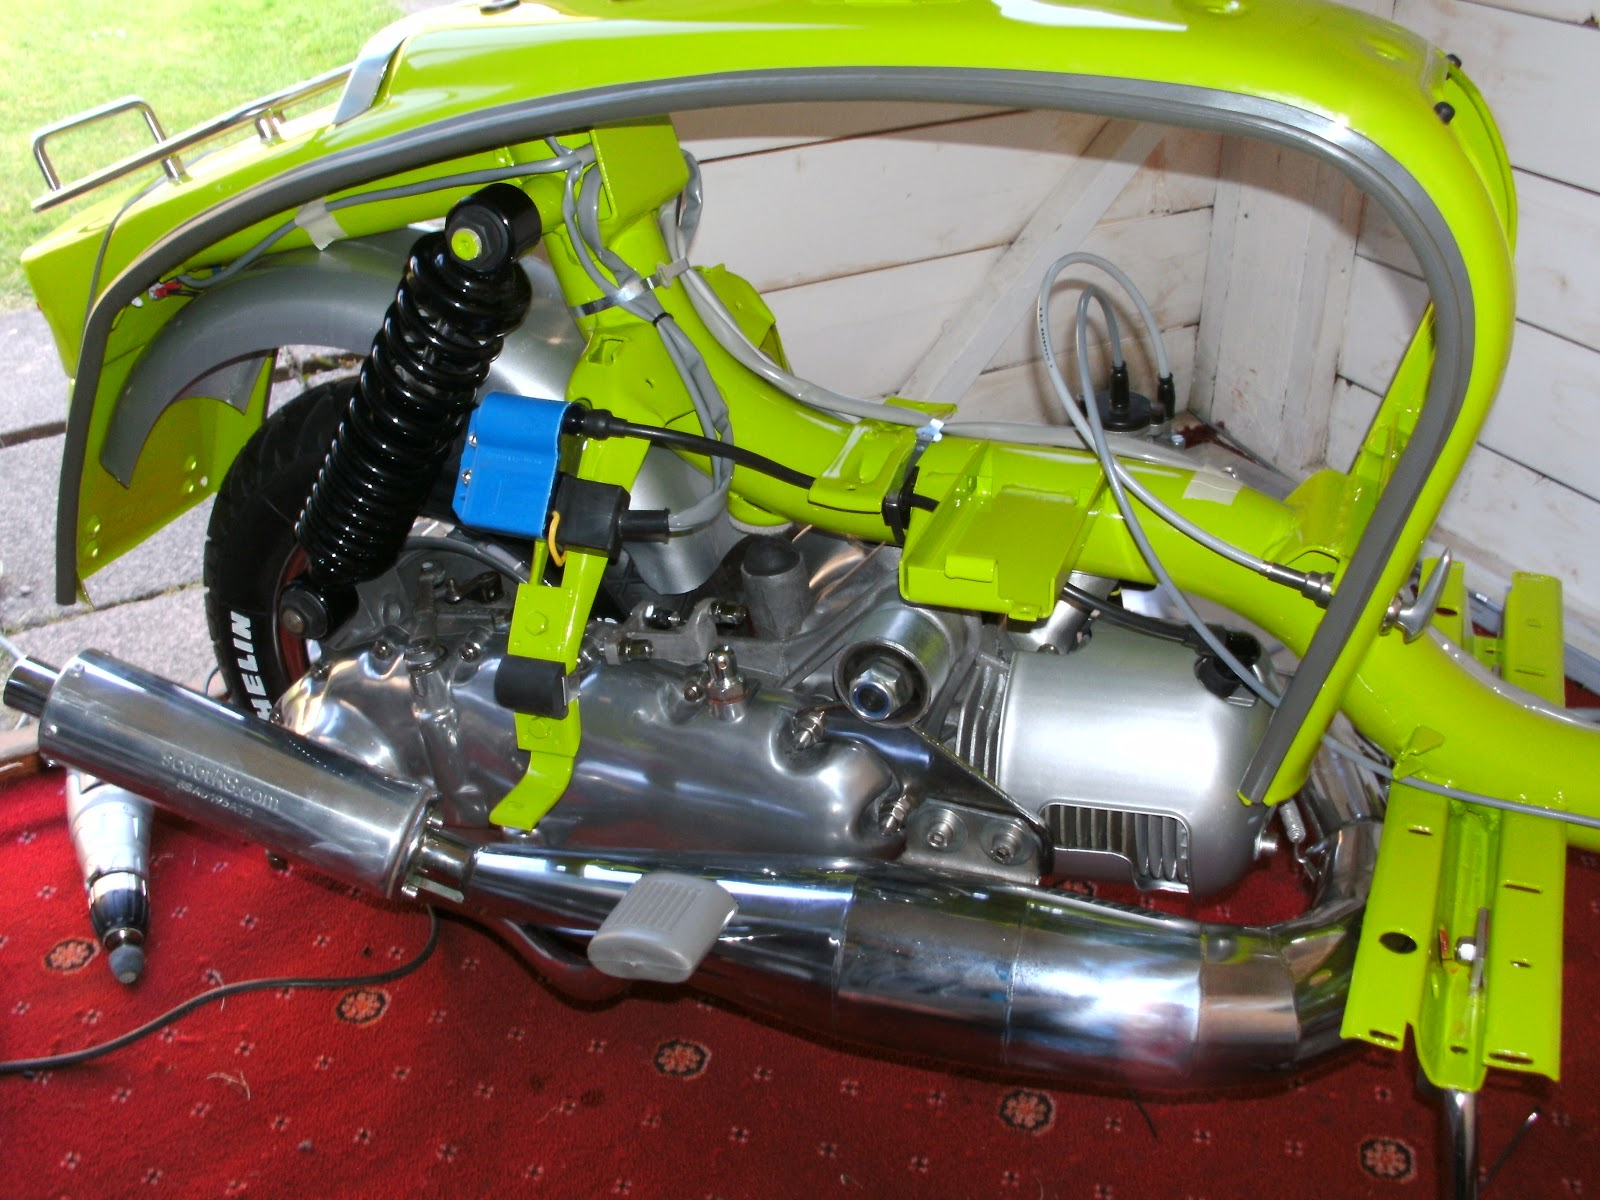 Lambretta Wiring Diagram With Indicators Bennett Trim Tab Helix 150cc Engine Free Image For User